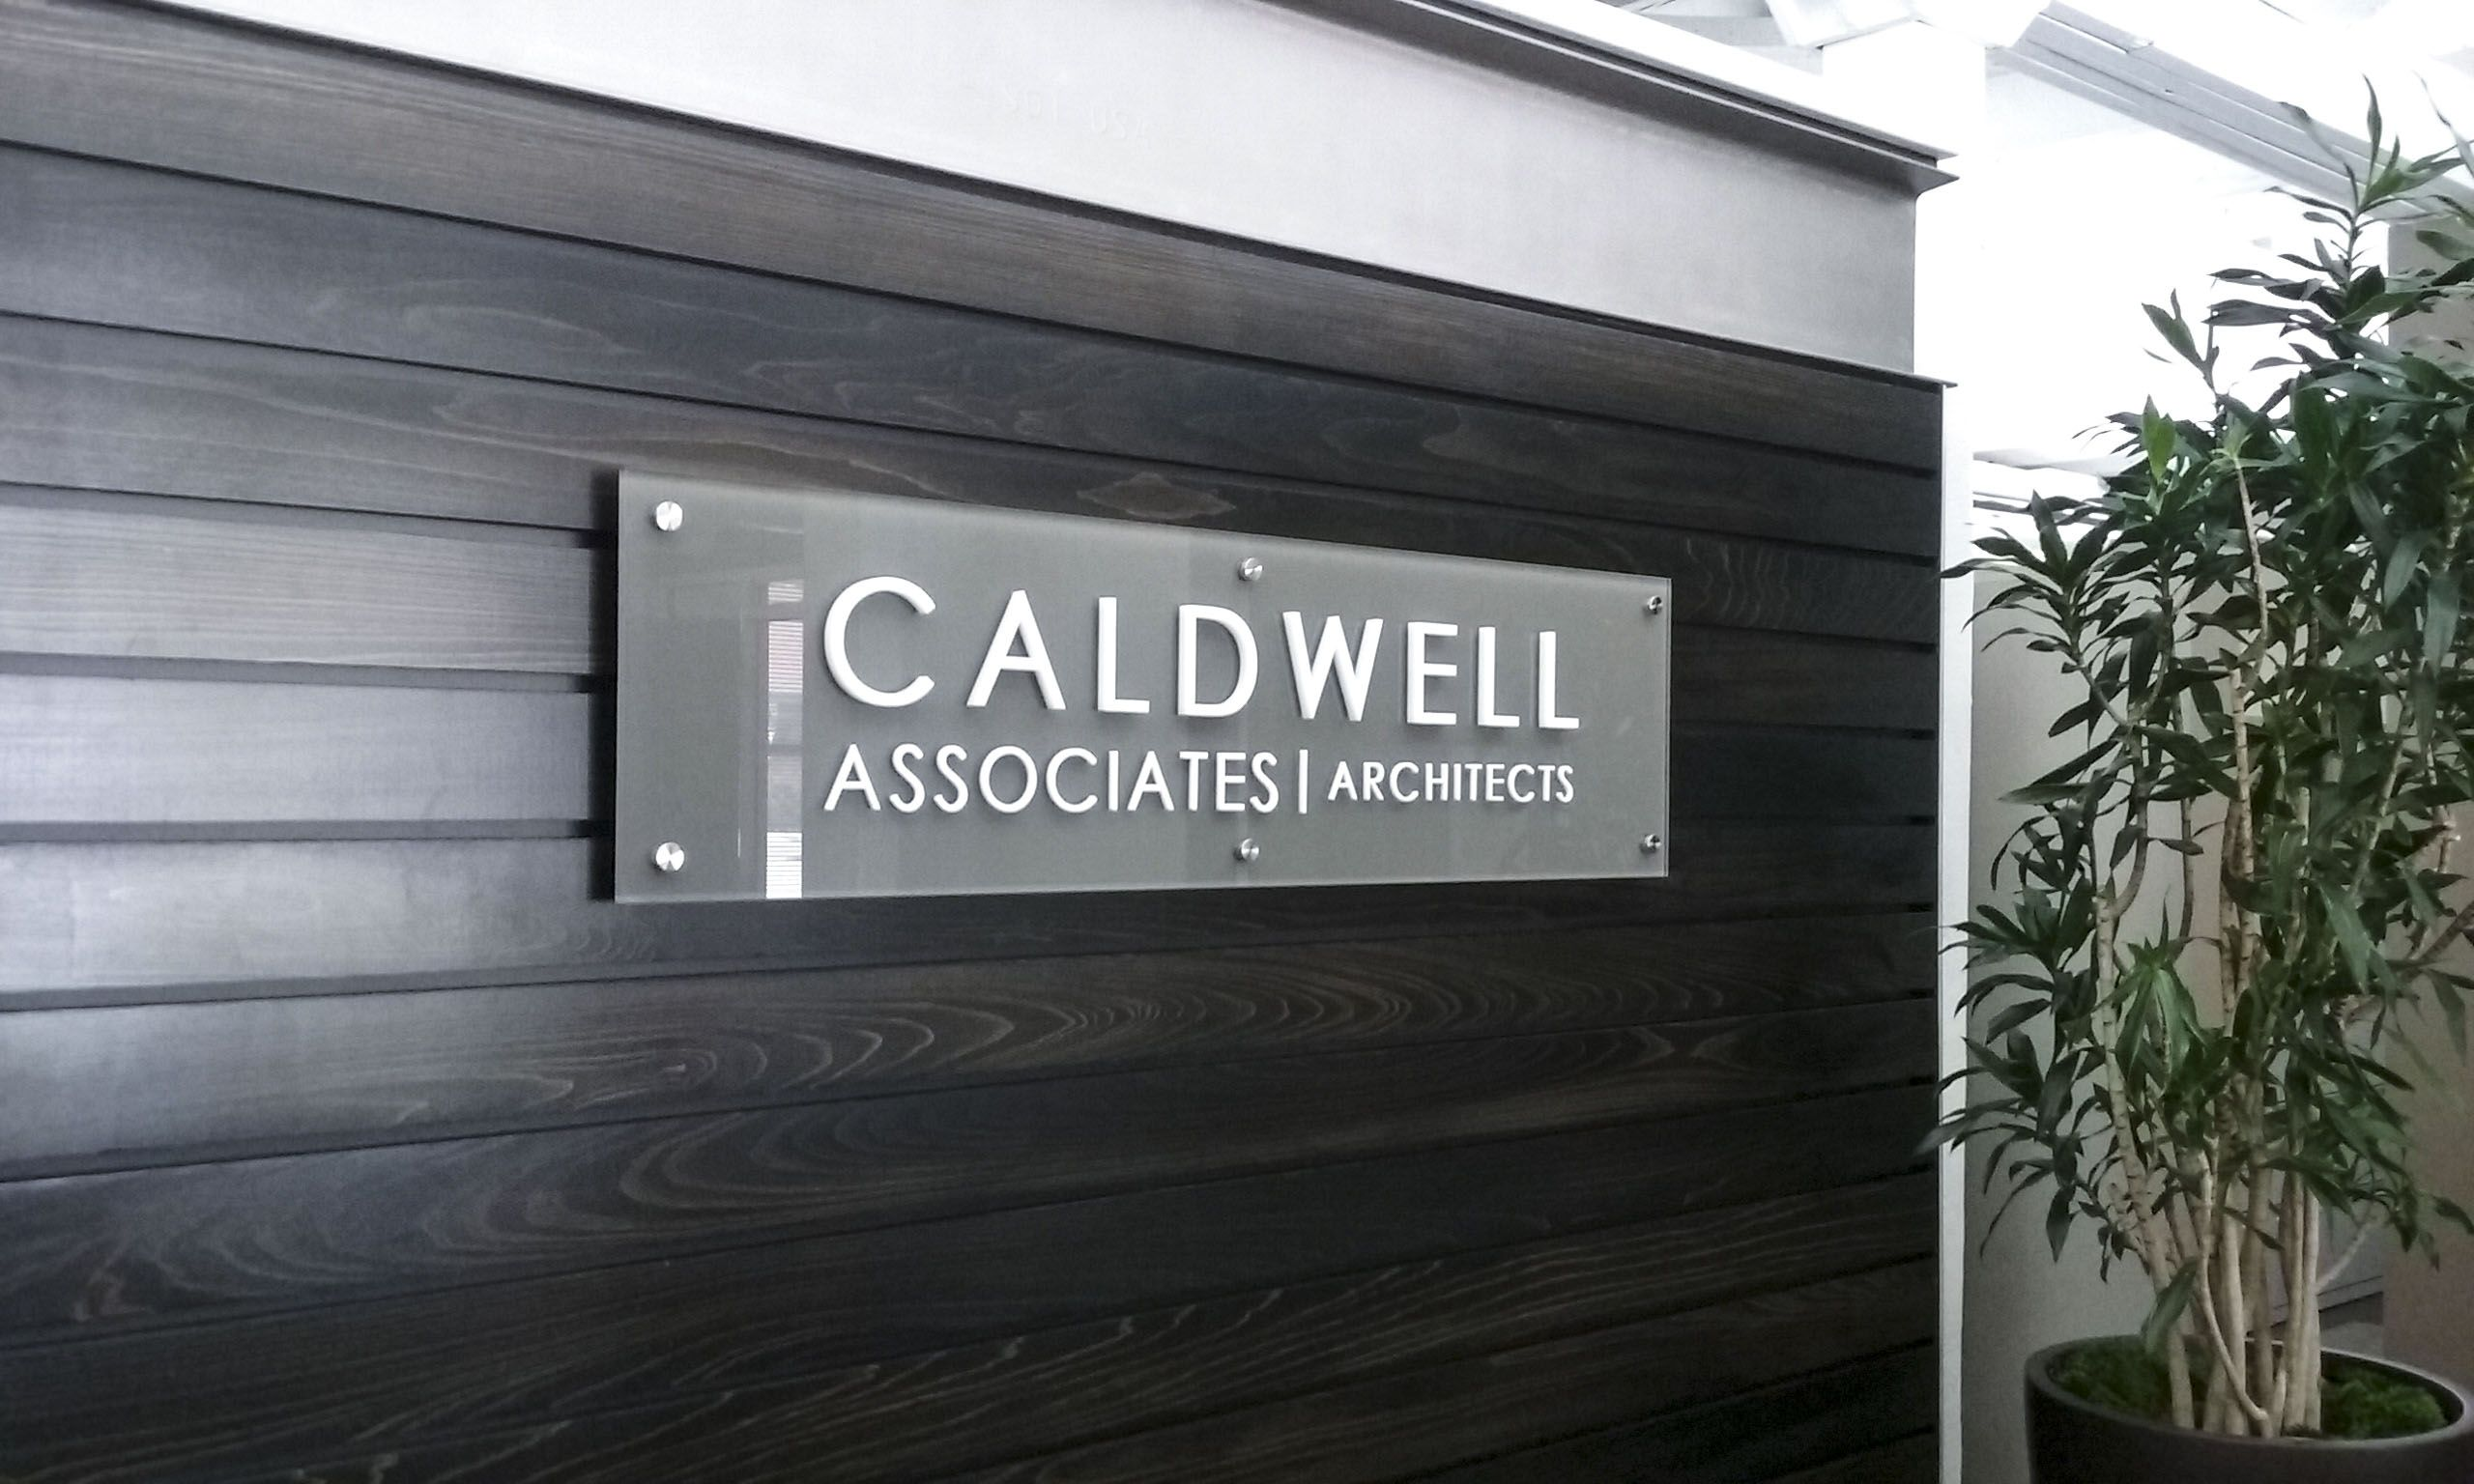 Caldwell Associates Architects corporate identity signage by